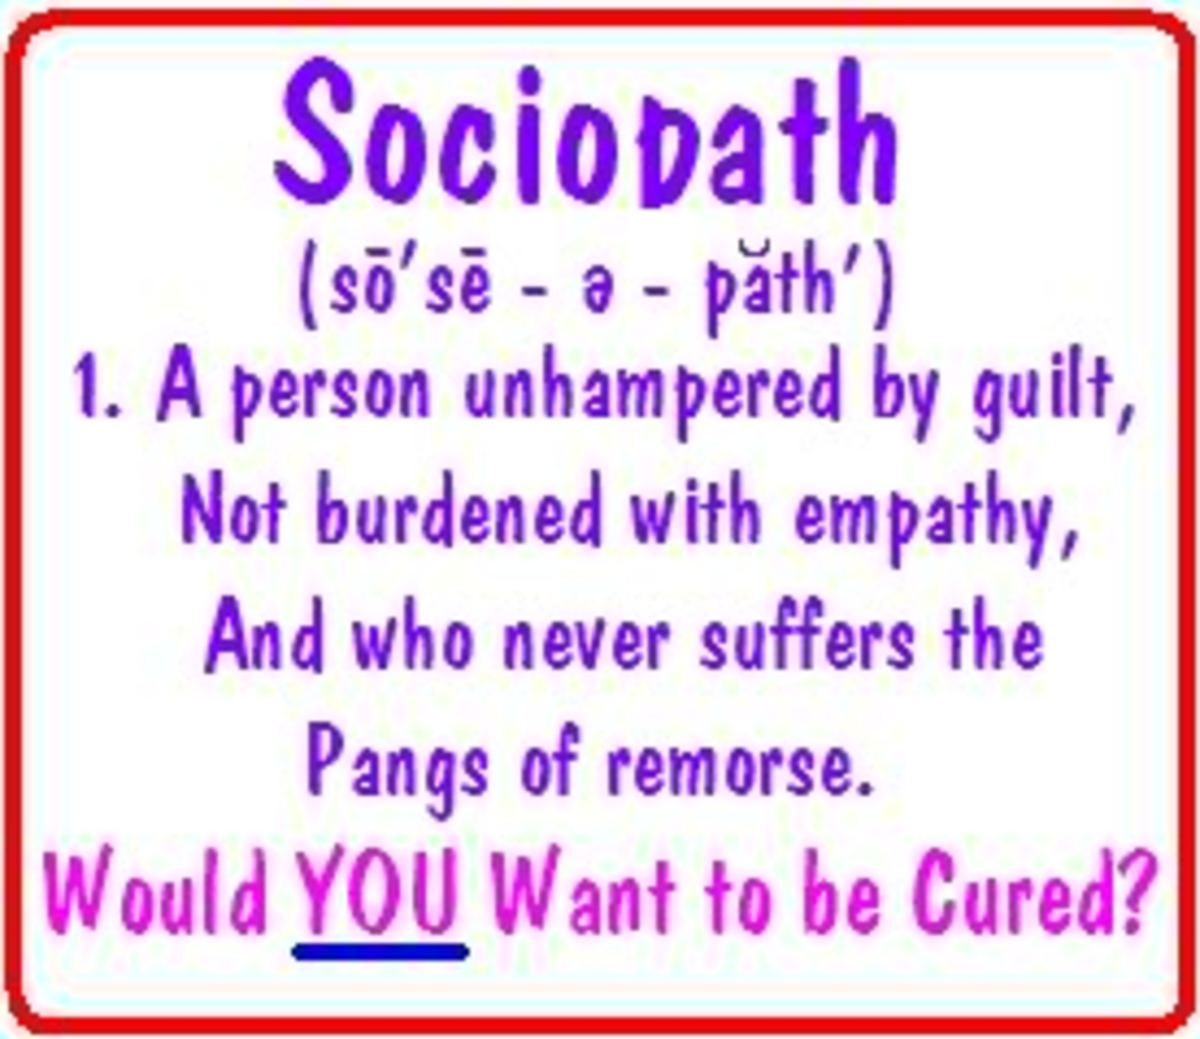 Sociopathic Tendencies - The Sociopath as a Pathological Liar